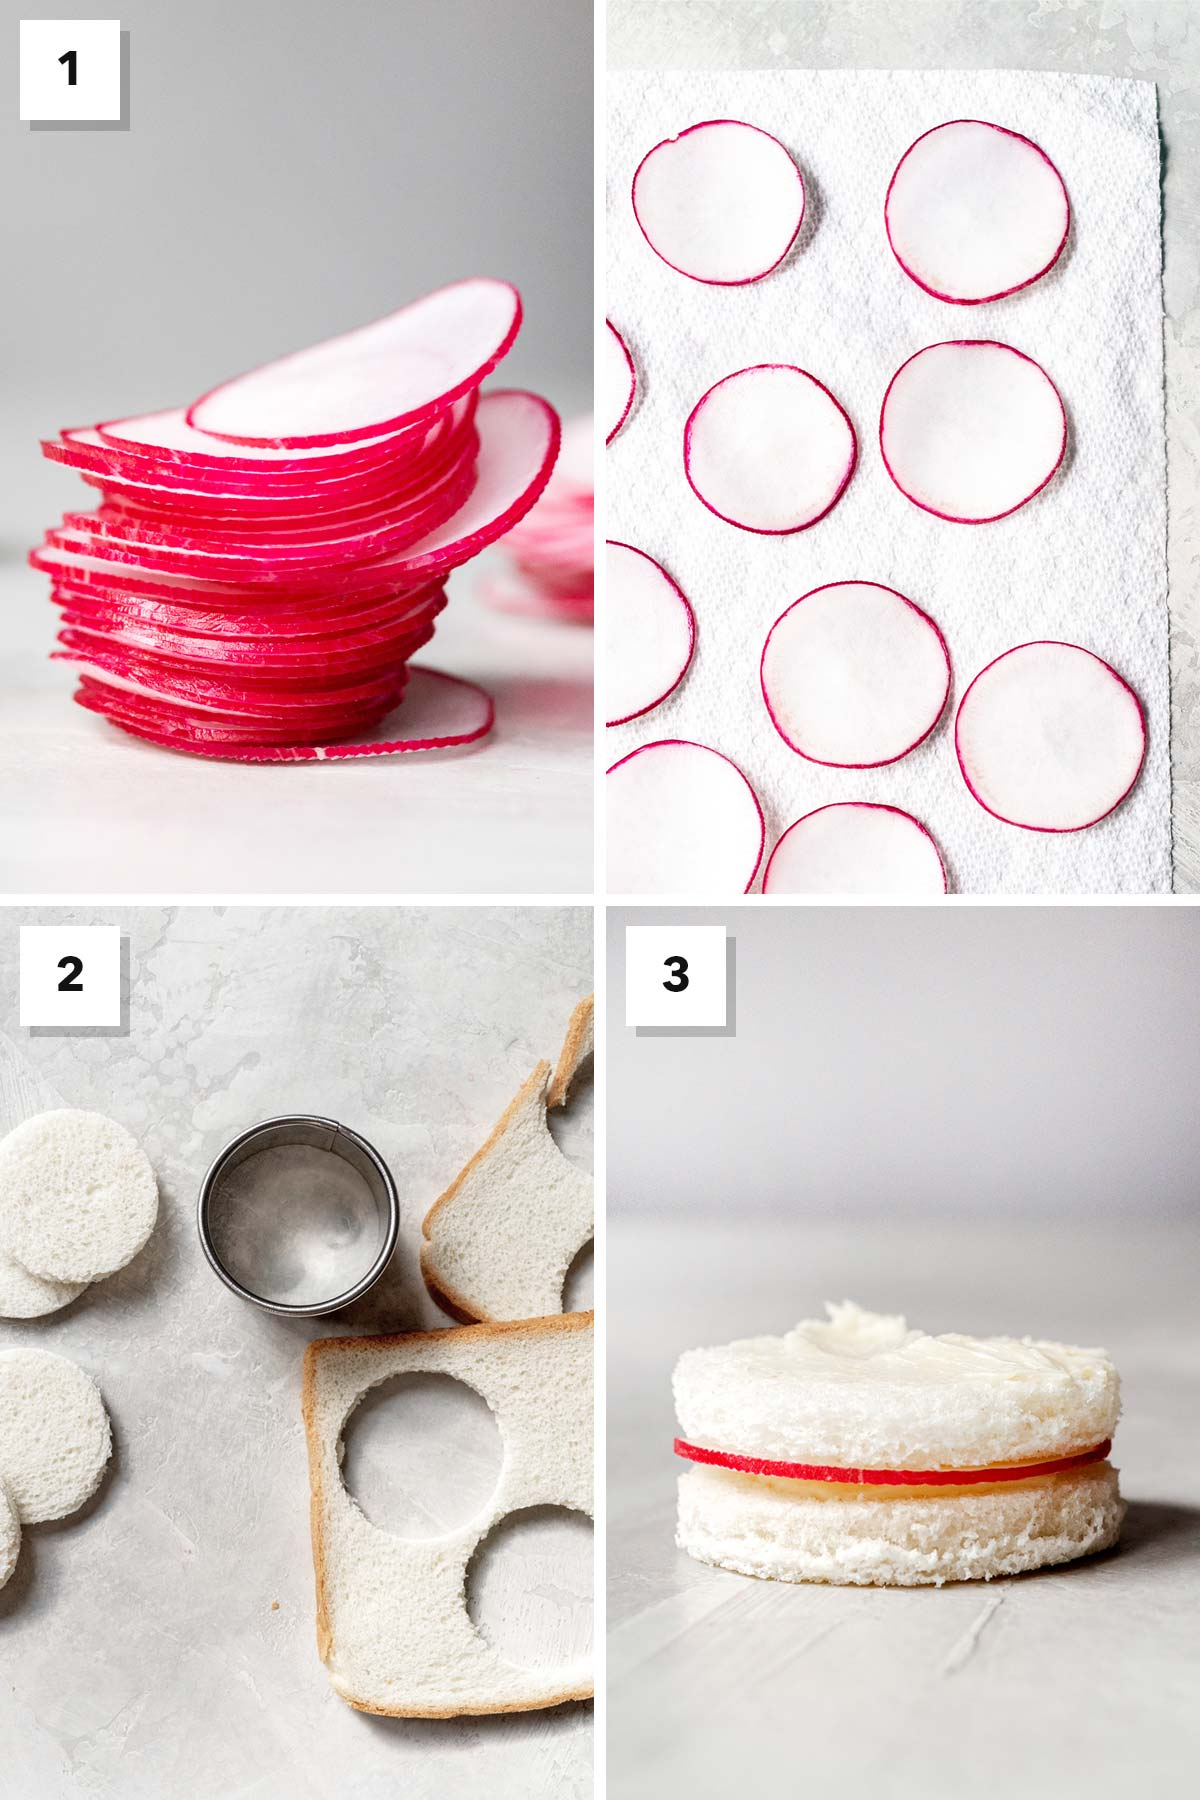 Four photo collate showing steps to make a radish tea sandwich.